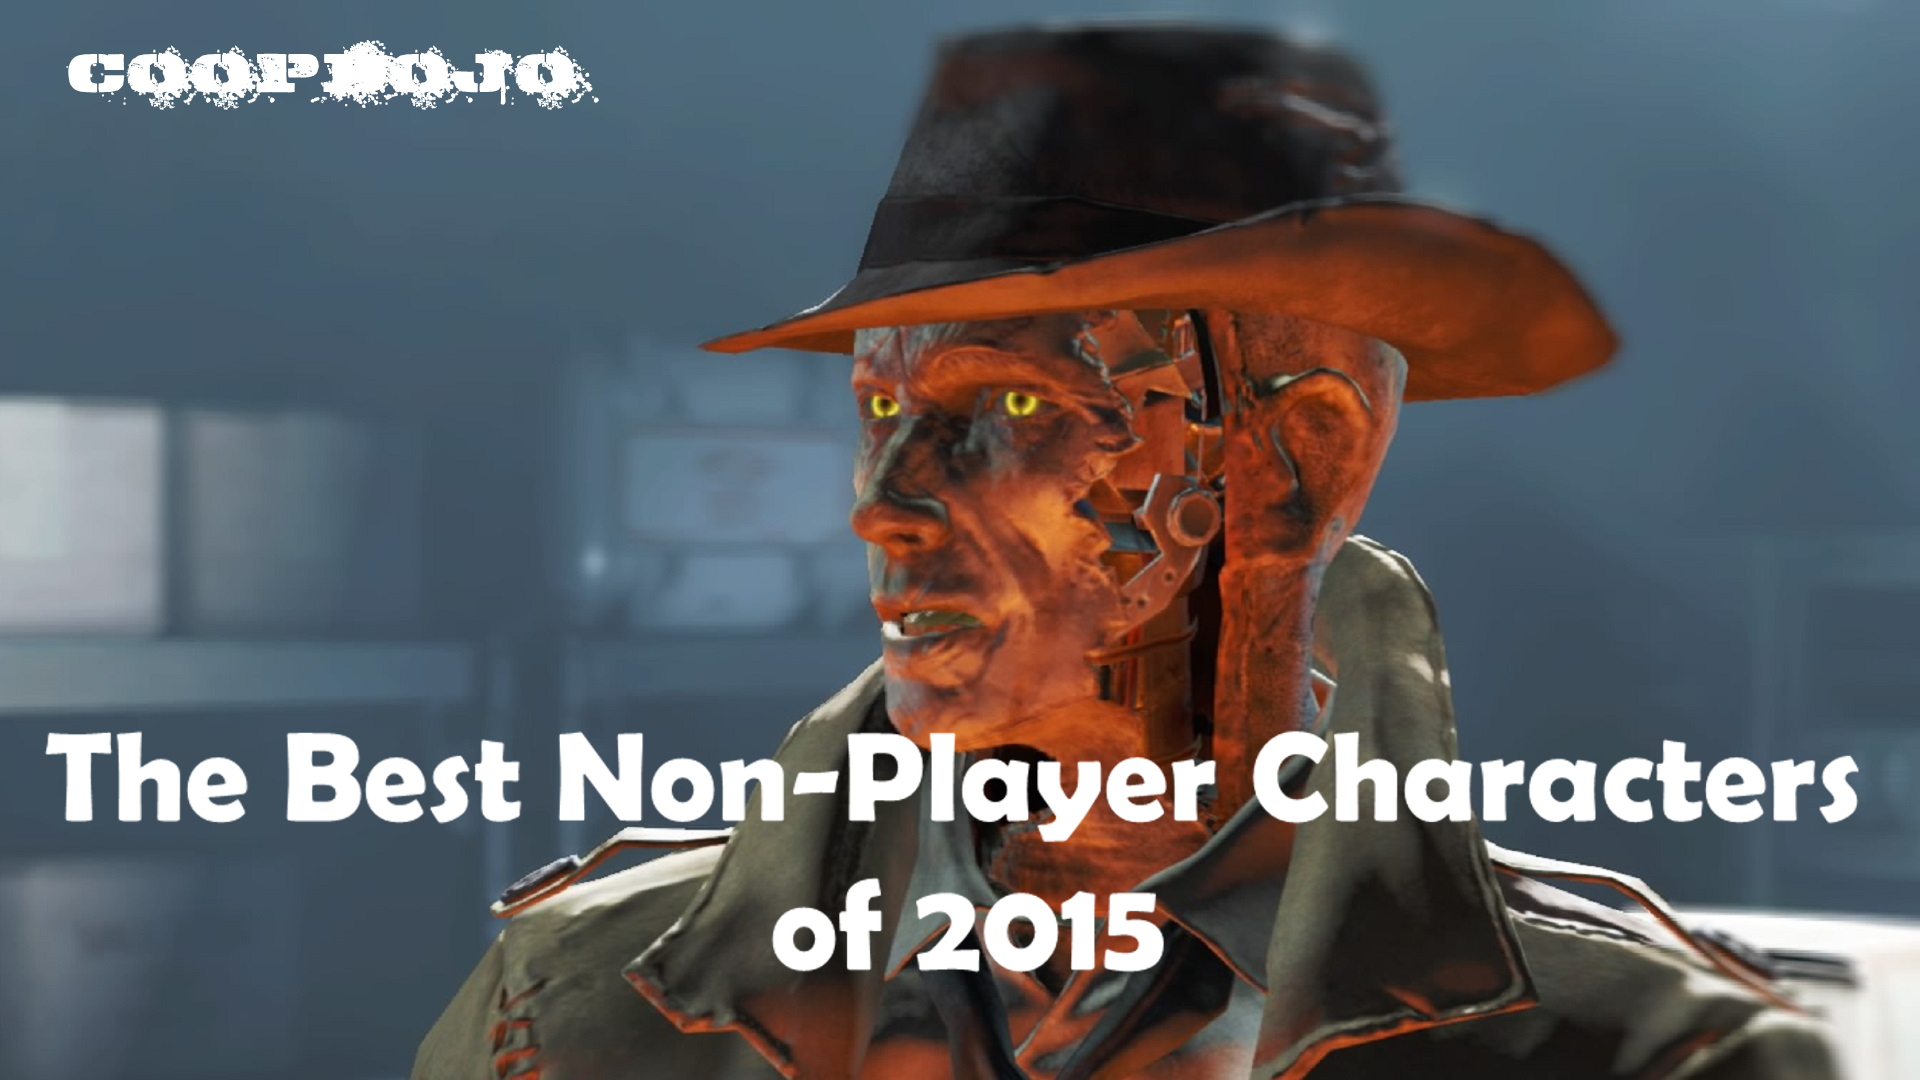 Best Non-Player Characters In Video Games In 2015